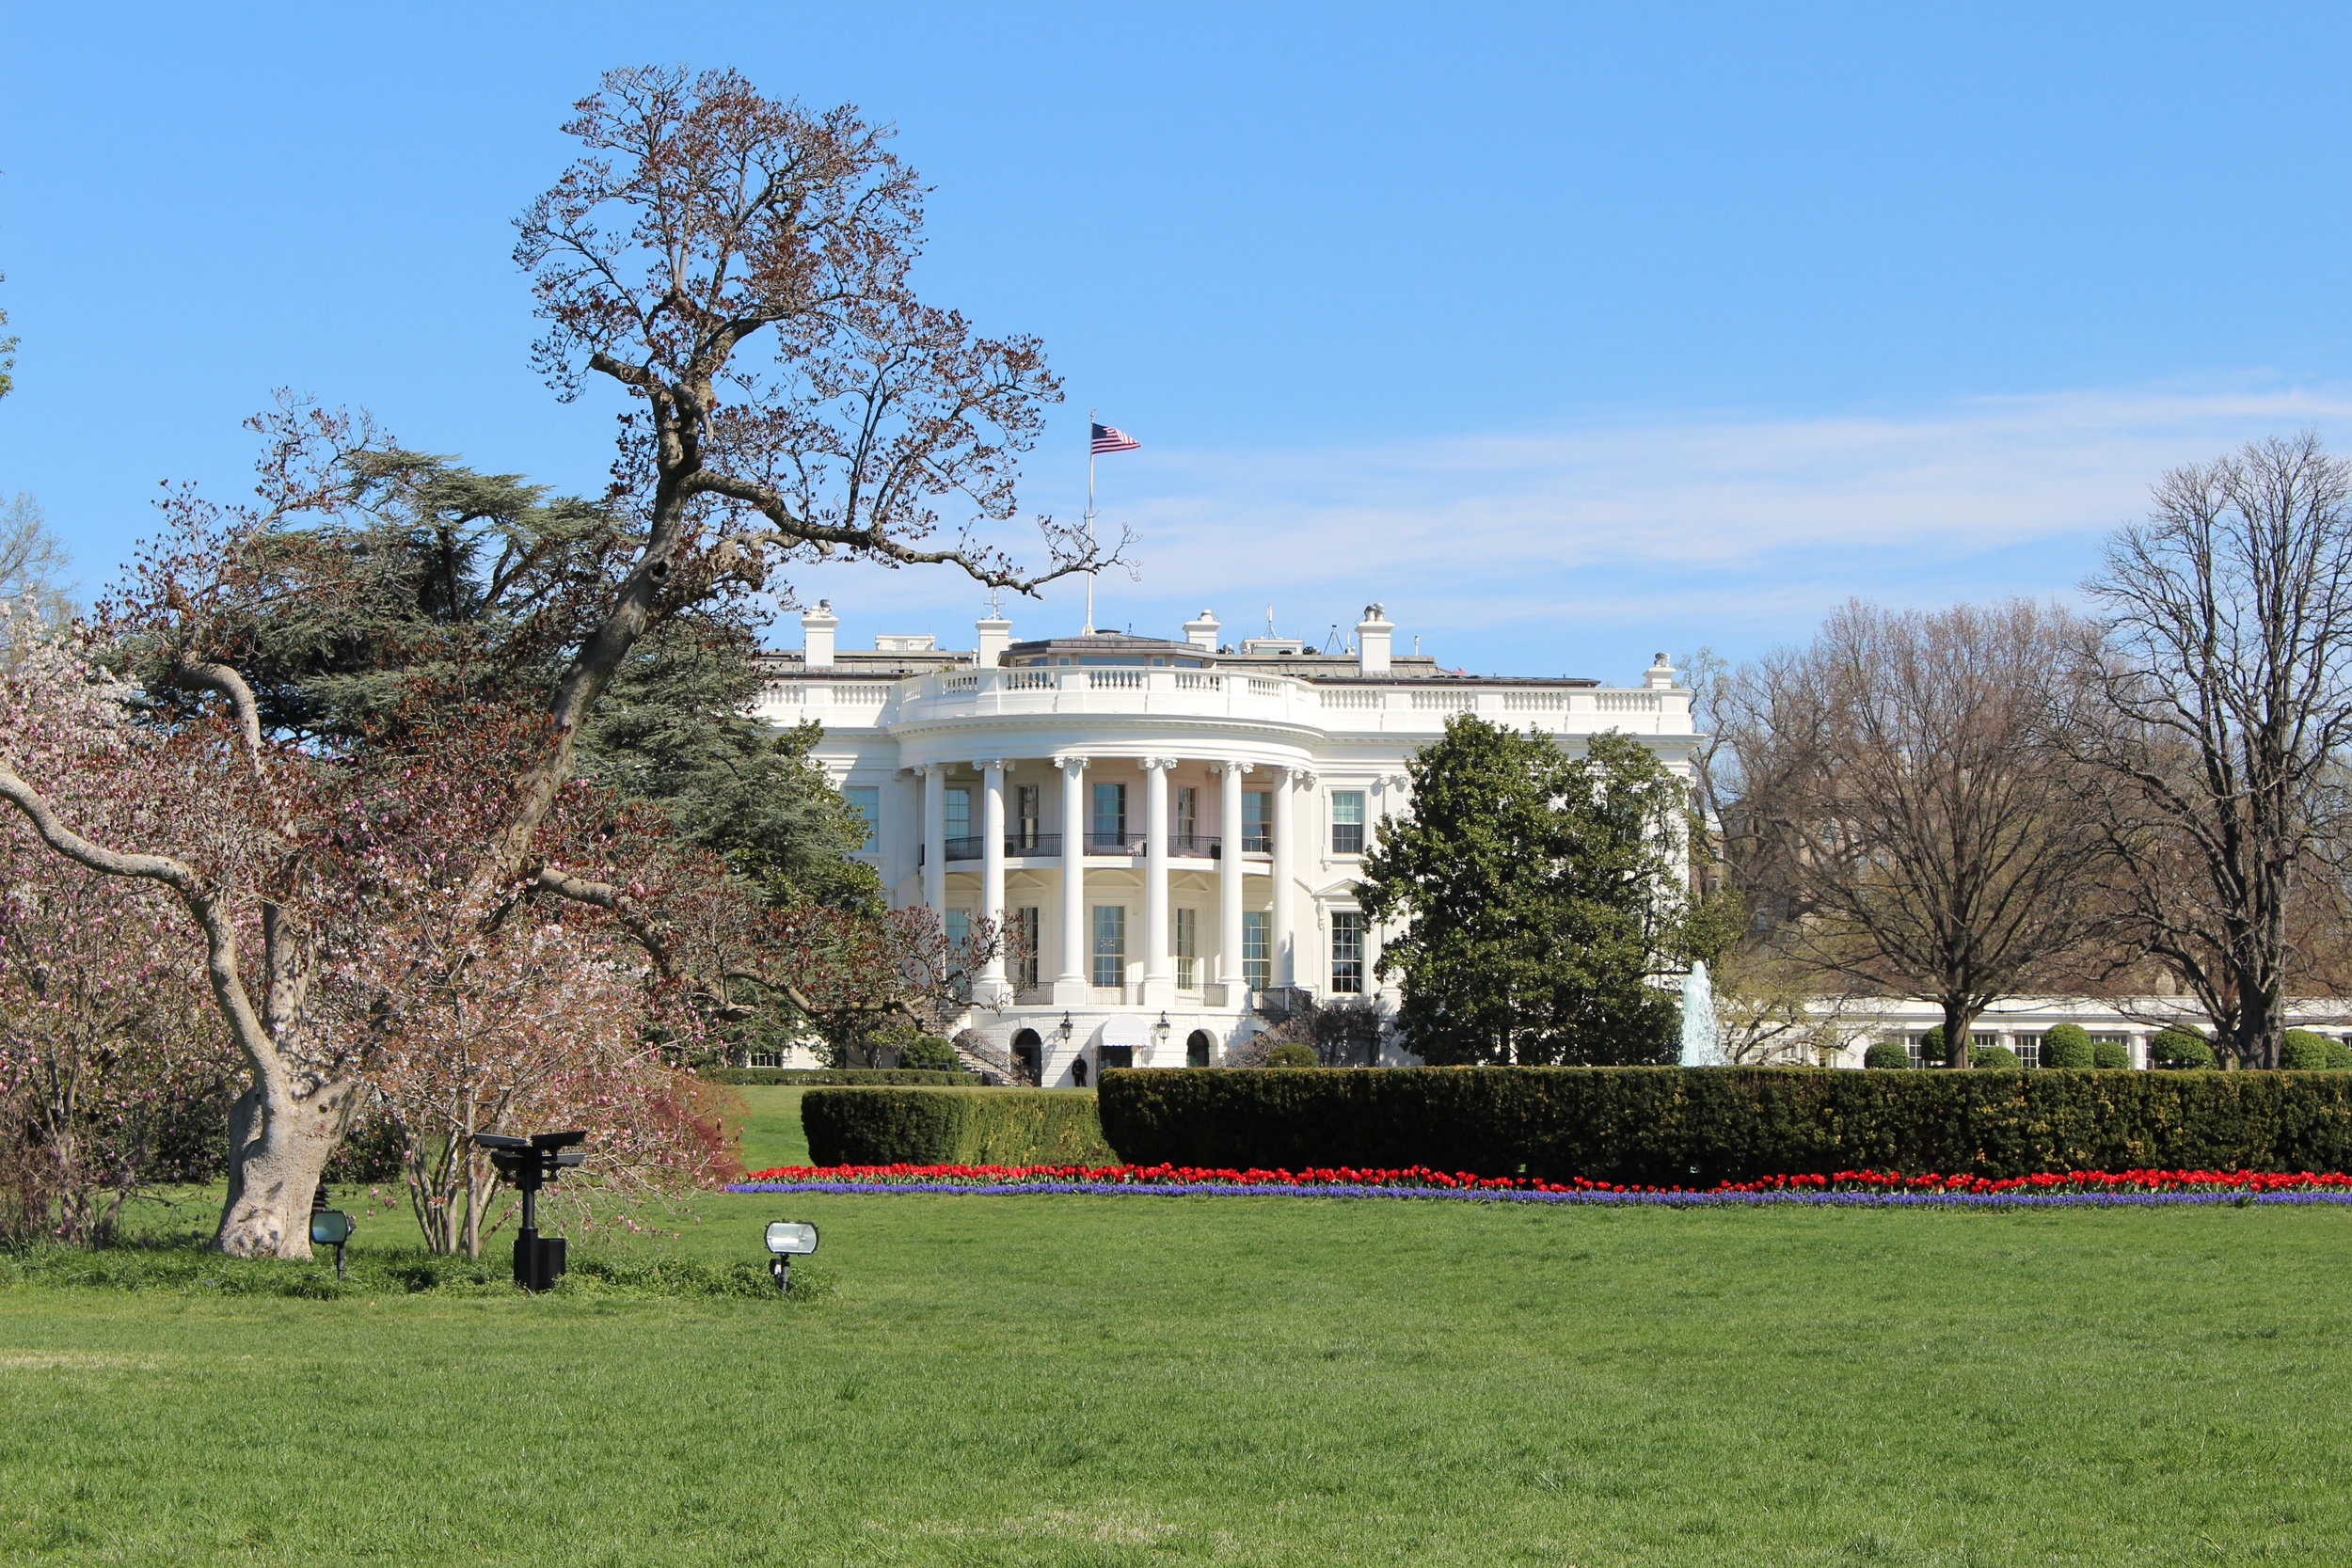 The White house during the cherry blossom festival